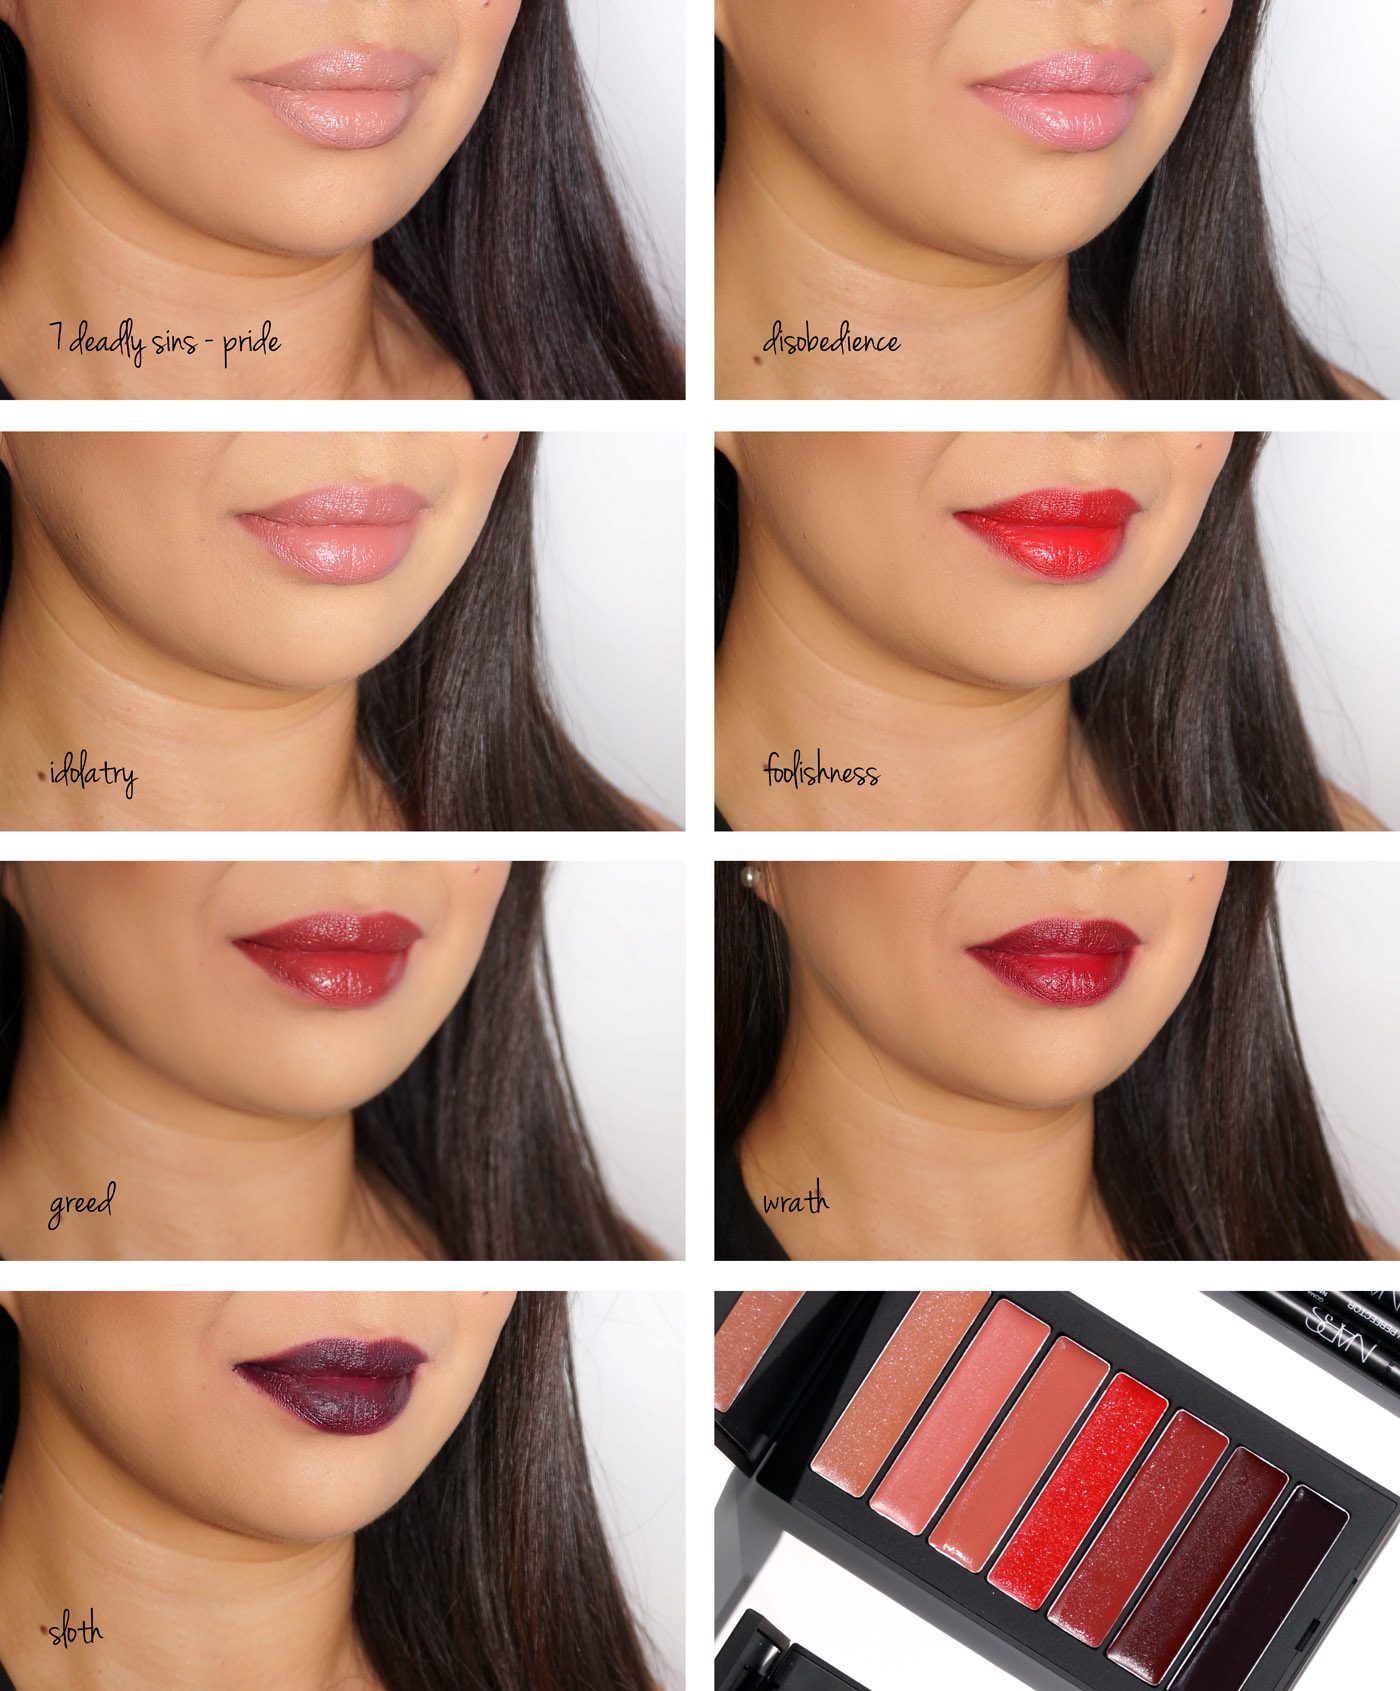 NARS 7 Deadly Sins Audacious Lipstick Palette swatches | The Beauty Look Book